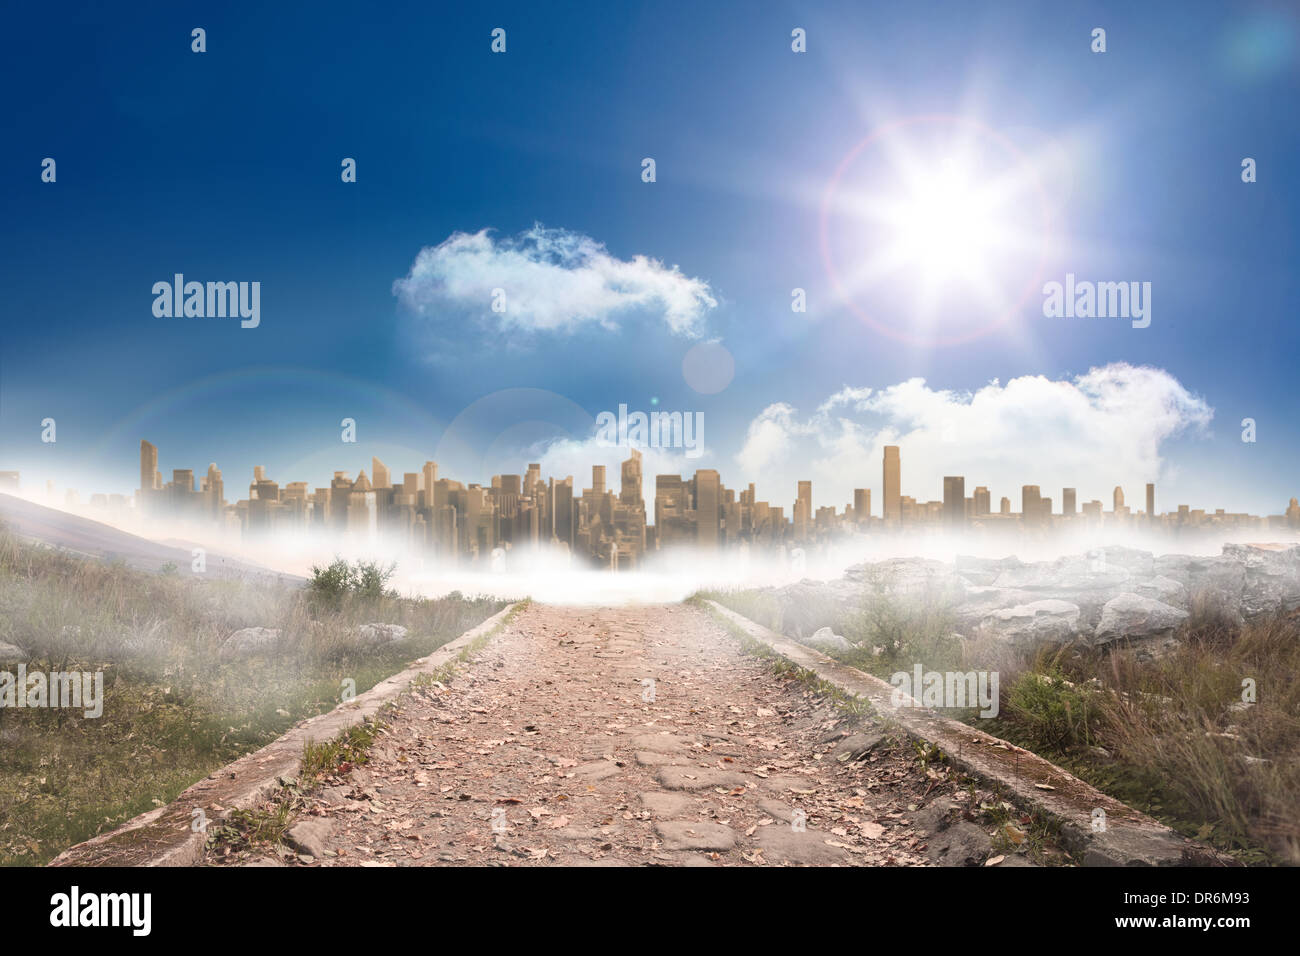 Stony path leading to large urban sprawl under the sun - Stock Image